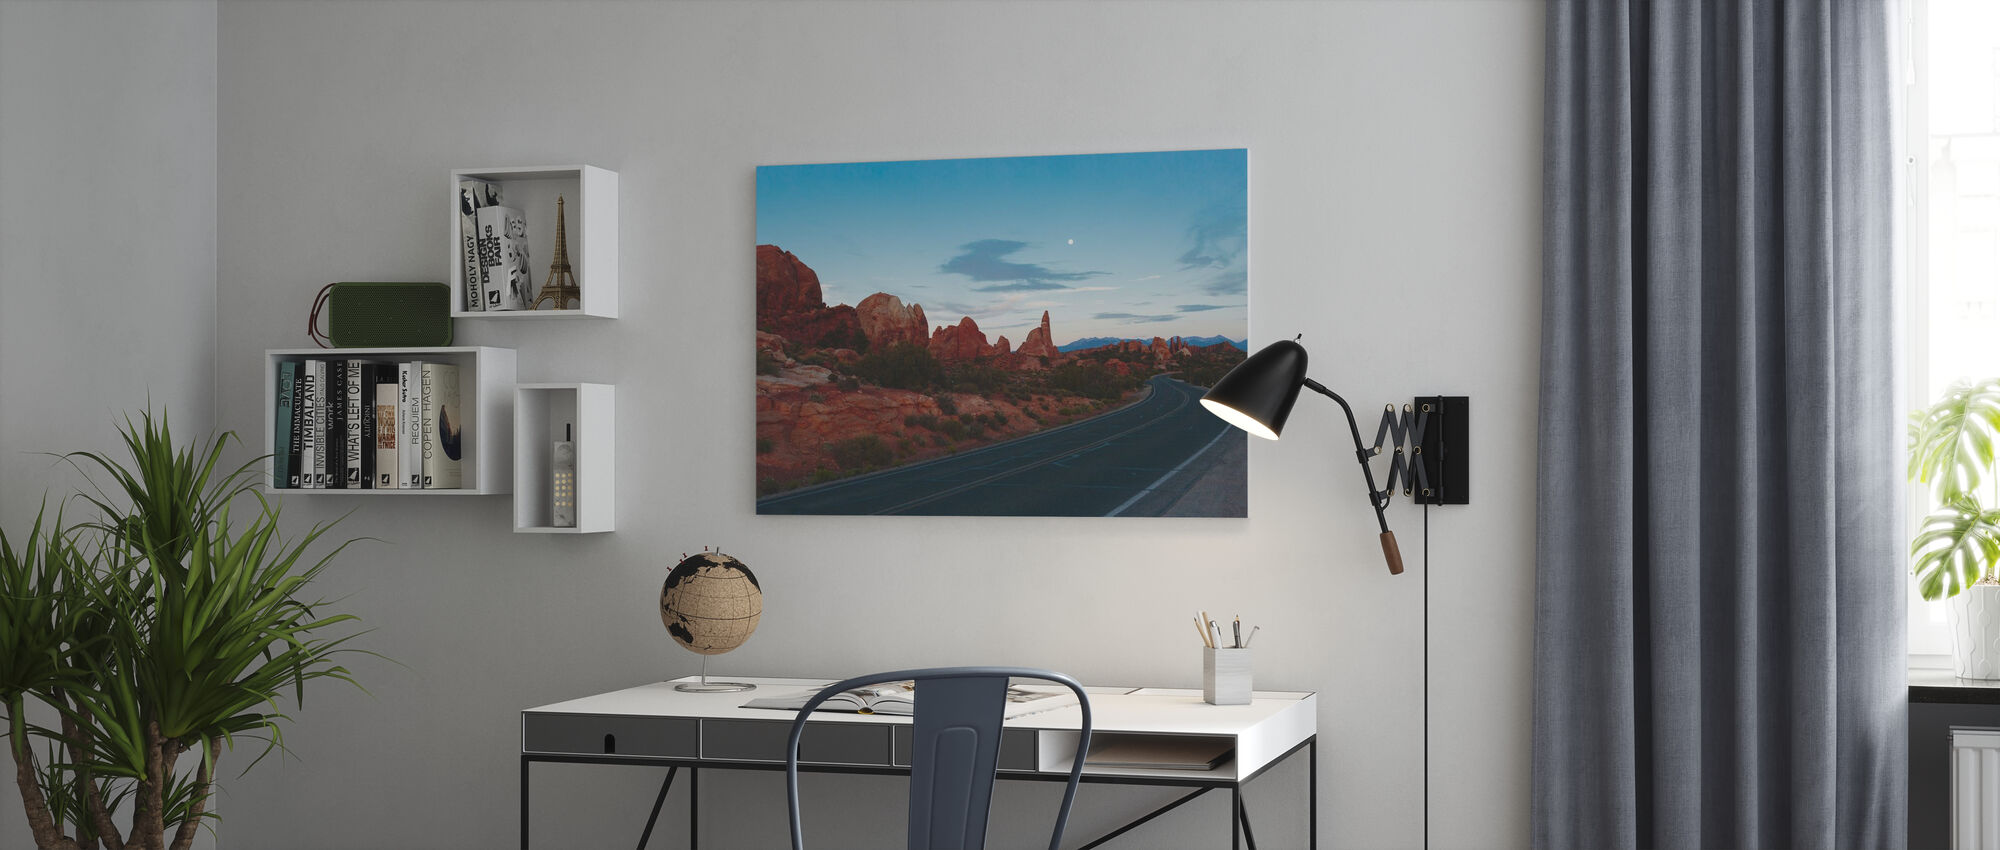 Road in Arches National Park - Canvas print - Office